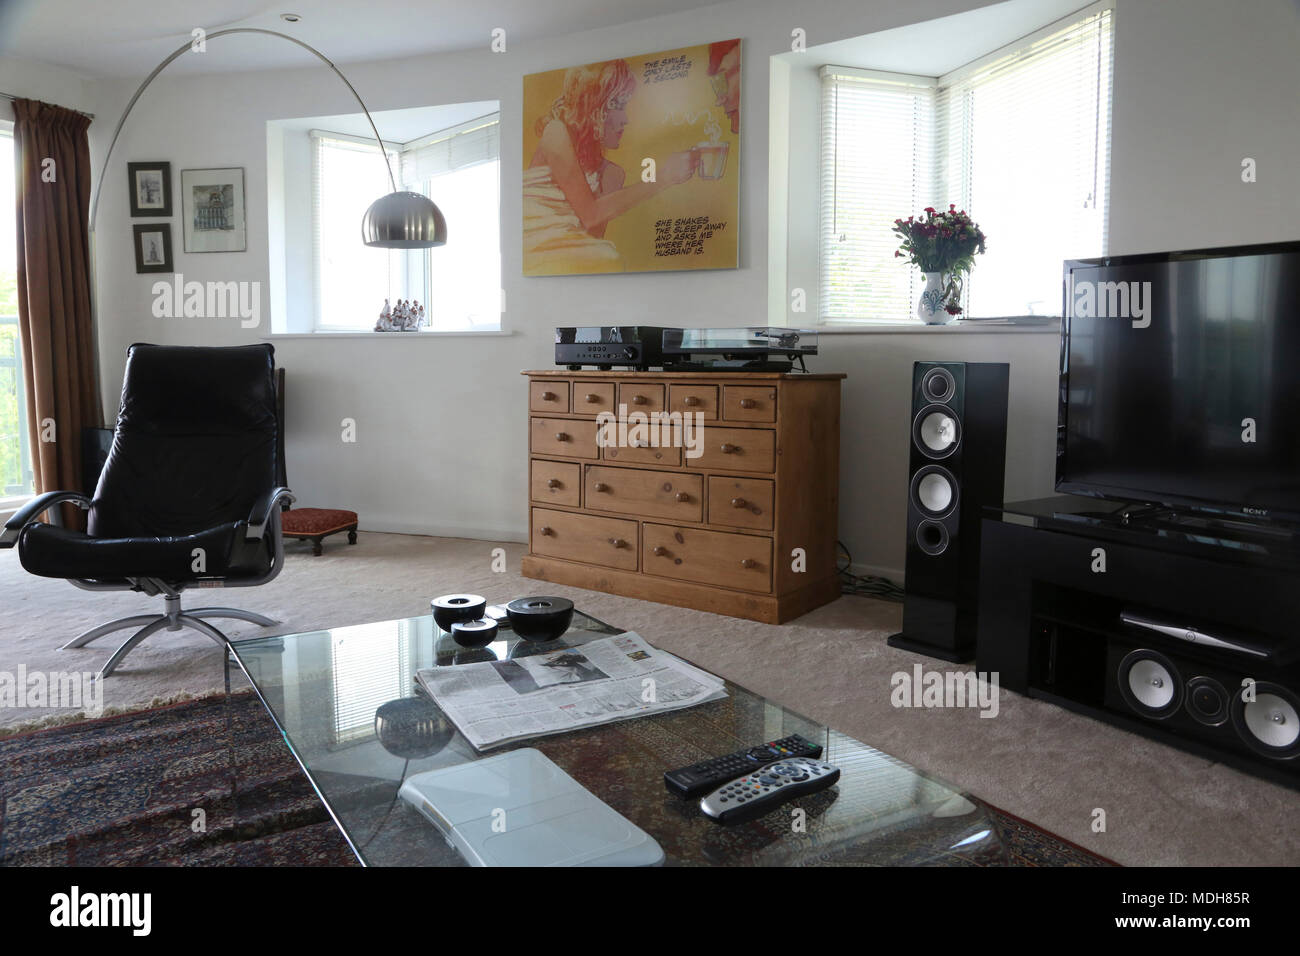 Open Plan Living Room With Modern Light And Leather Chair Cheltenham Gloucestershire England - Stock Image